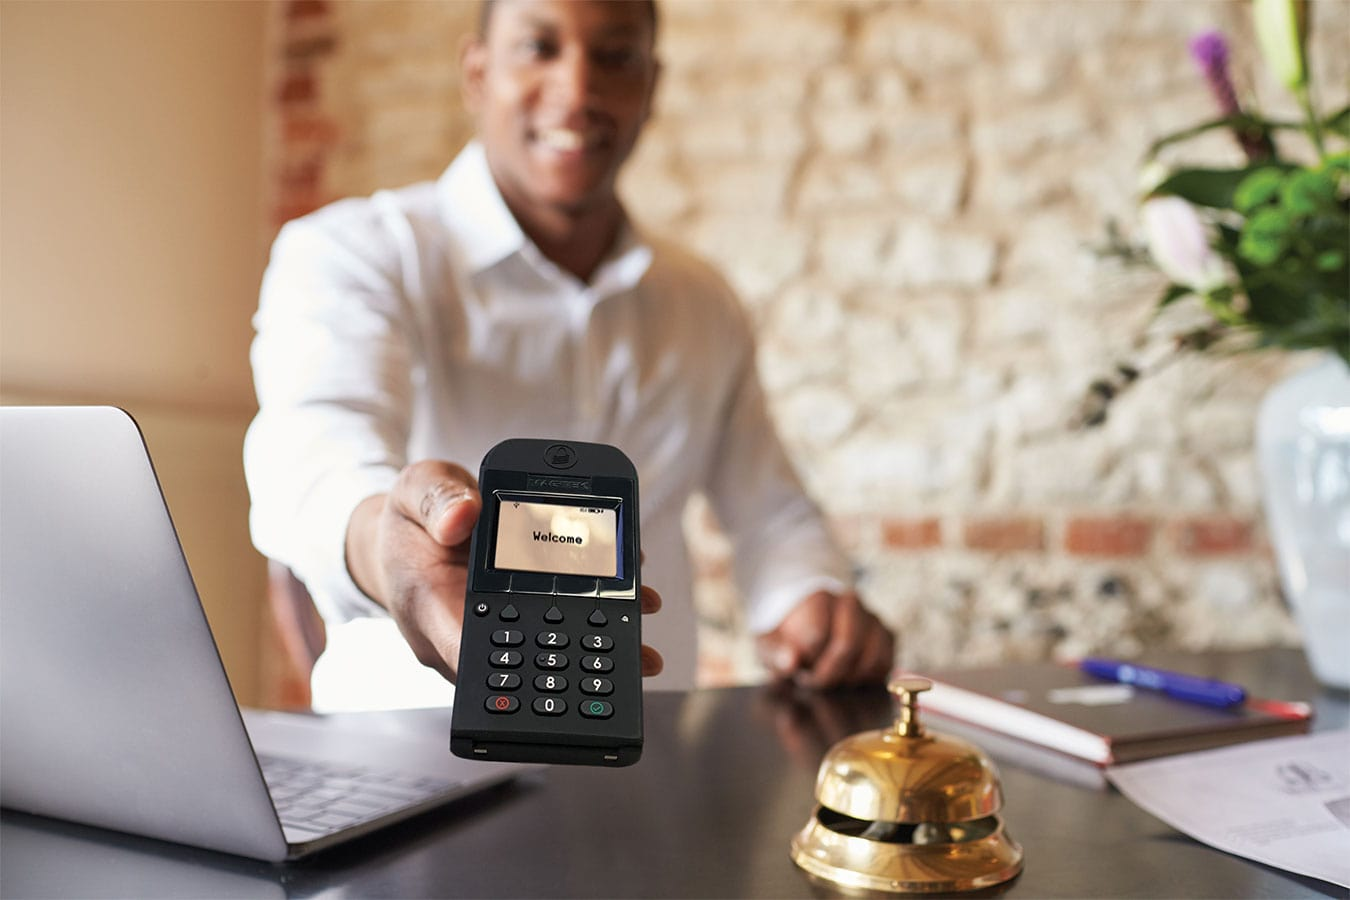 Hotel concierge and lobbies use the DynaPro Go card reader with PIN Pad for lodging payments